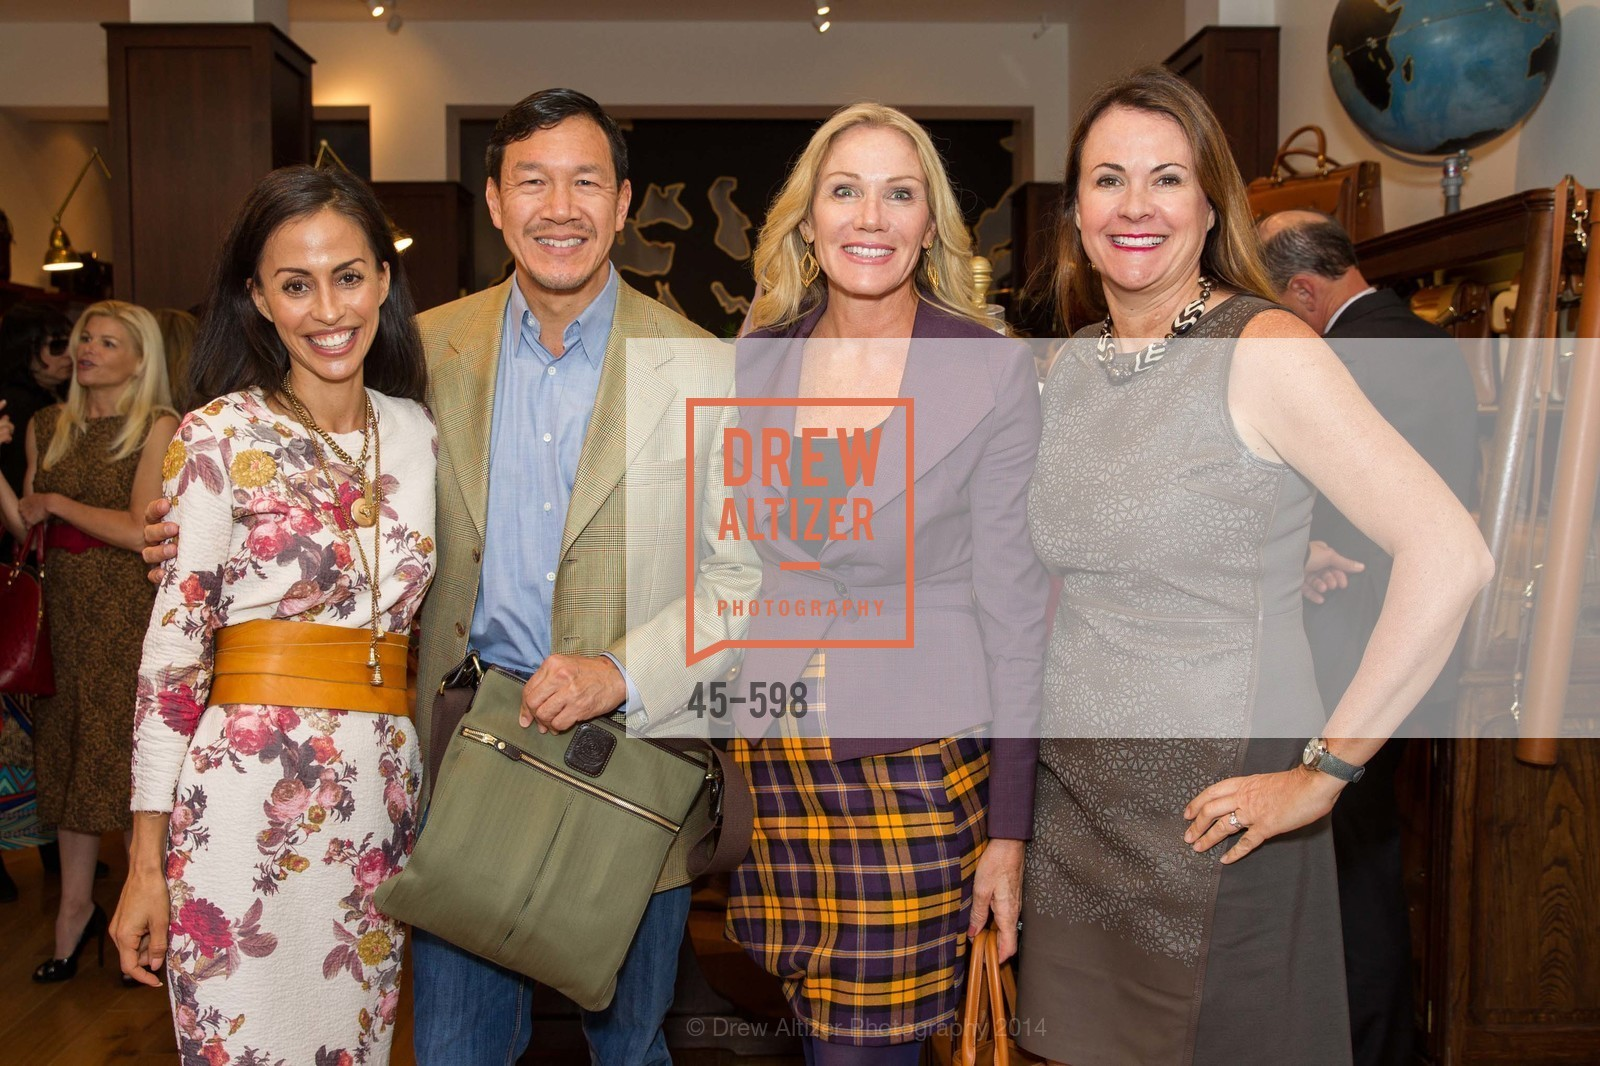 Pam Bristow, Tim Wu, Rosemary Baker, Tanya Peterson, GHURKA FALL FASHION Press Preview Honoring the ZOO BOARD, US, October 7th, 2014,Drew Altizer, Drew Altizer Photography, full-service agency, private events, San Francisco photographer, photographer california